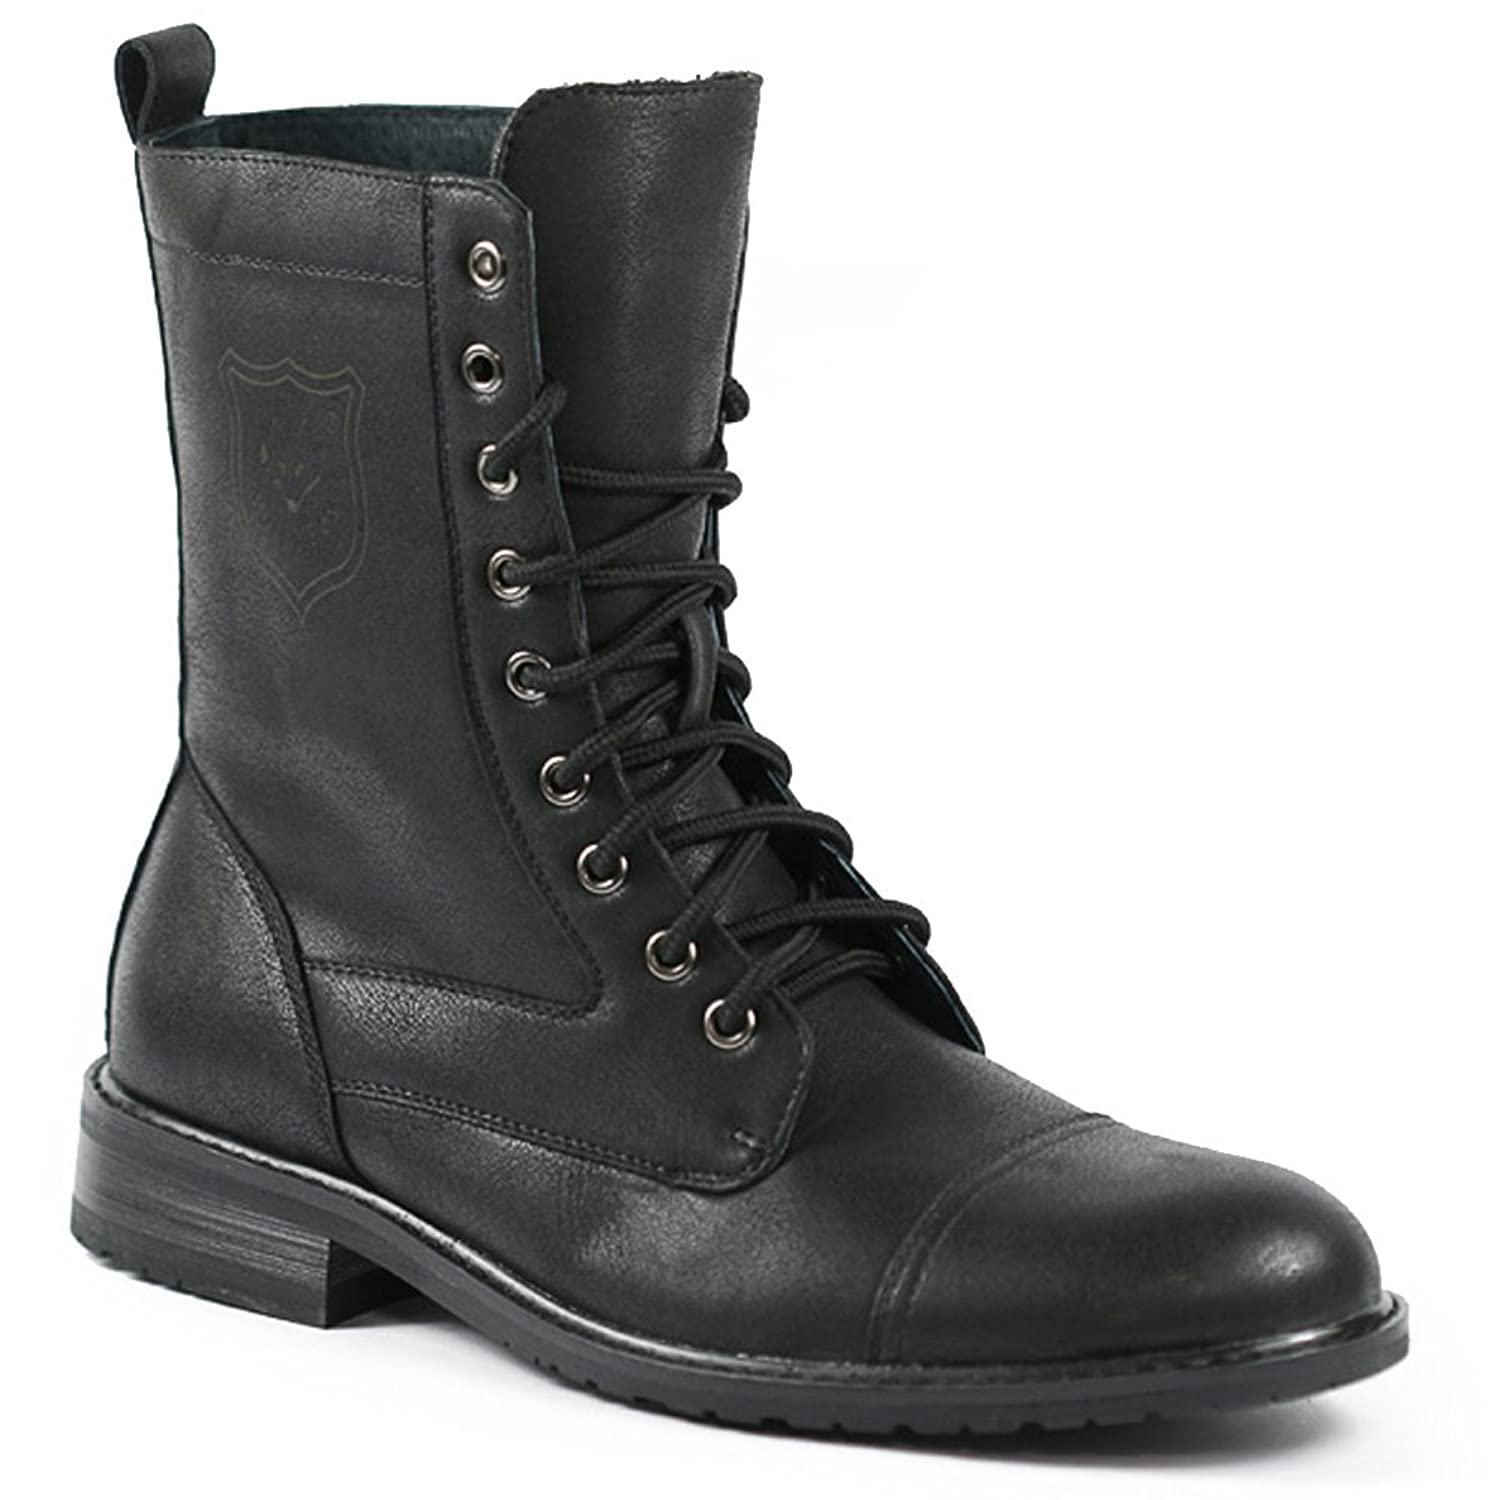 Amazon.com: Polar Fox MPX-801026 Black Mens Lace Up Military ...